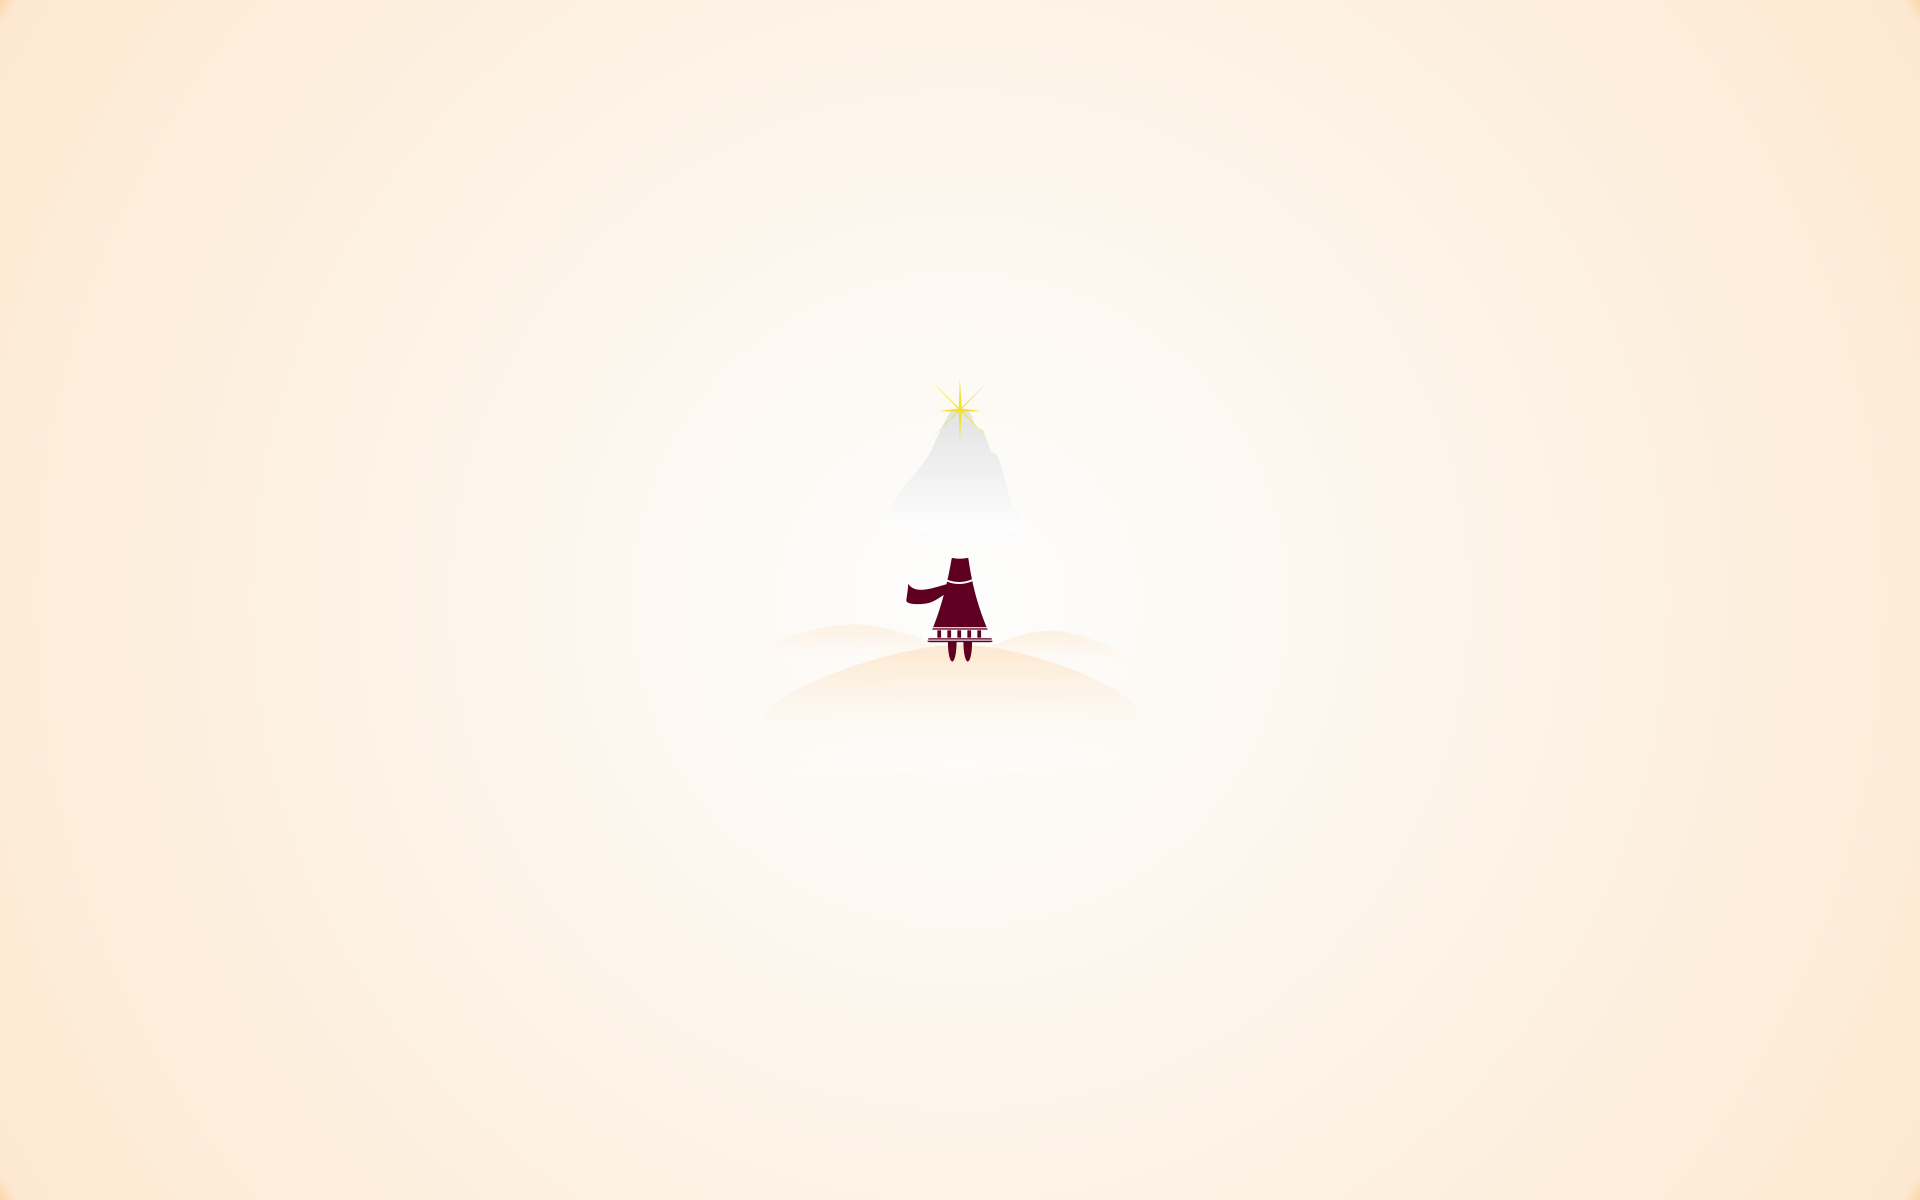 Journey minimal wallpaper pack by carudo on deviantart for Minimal art reddit